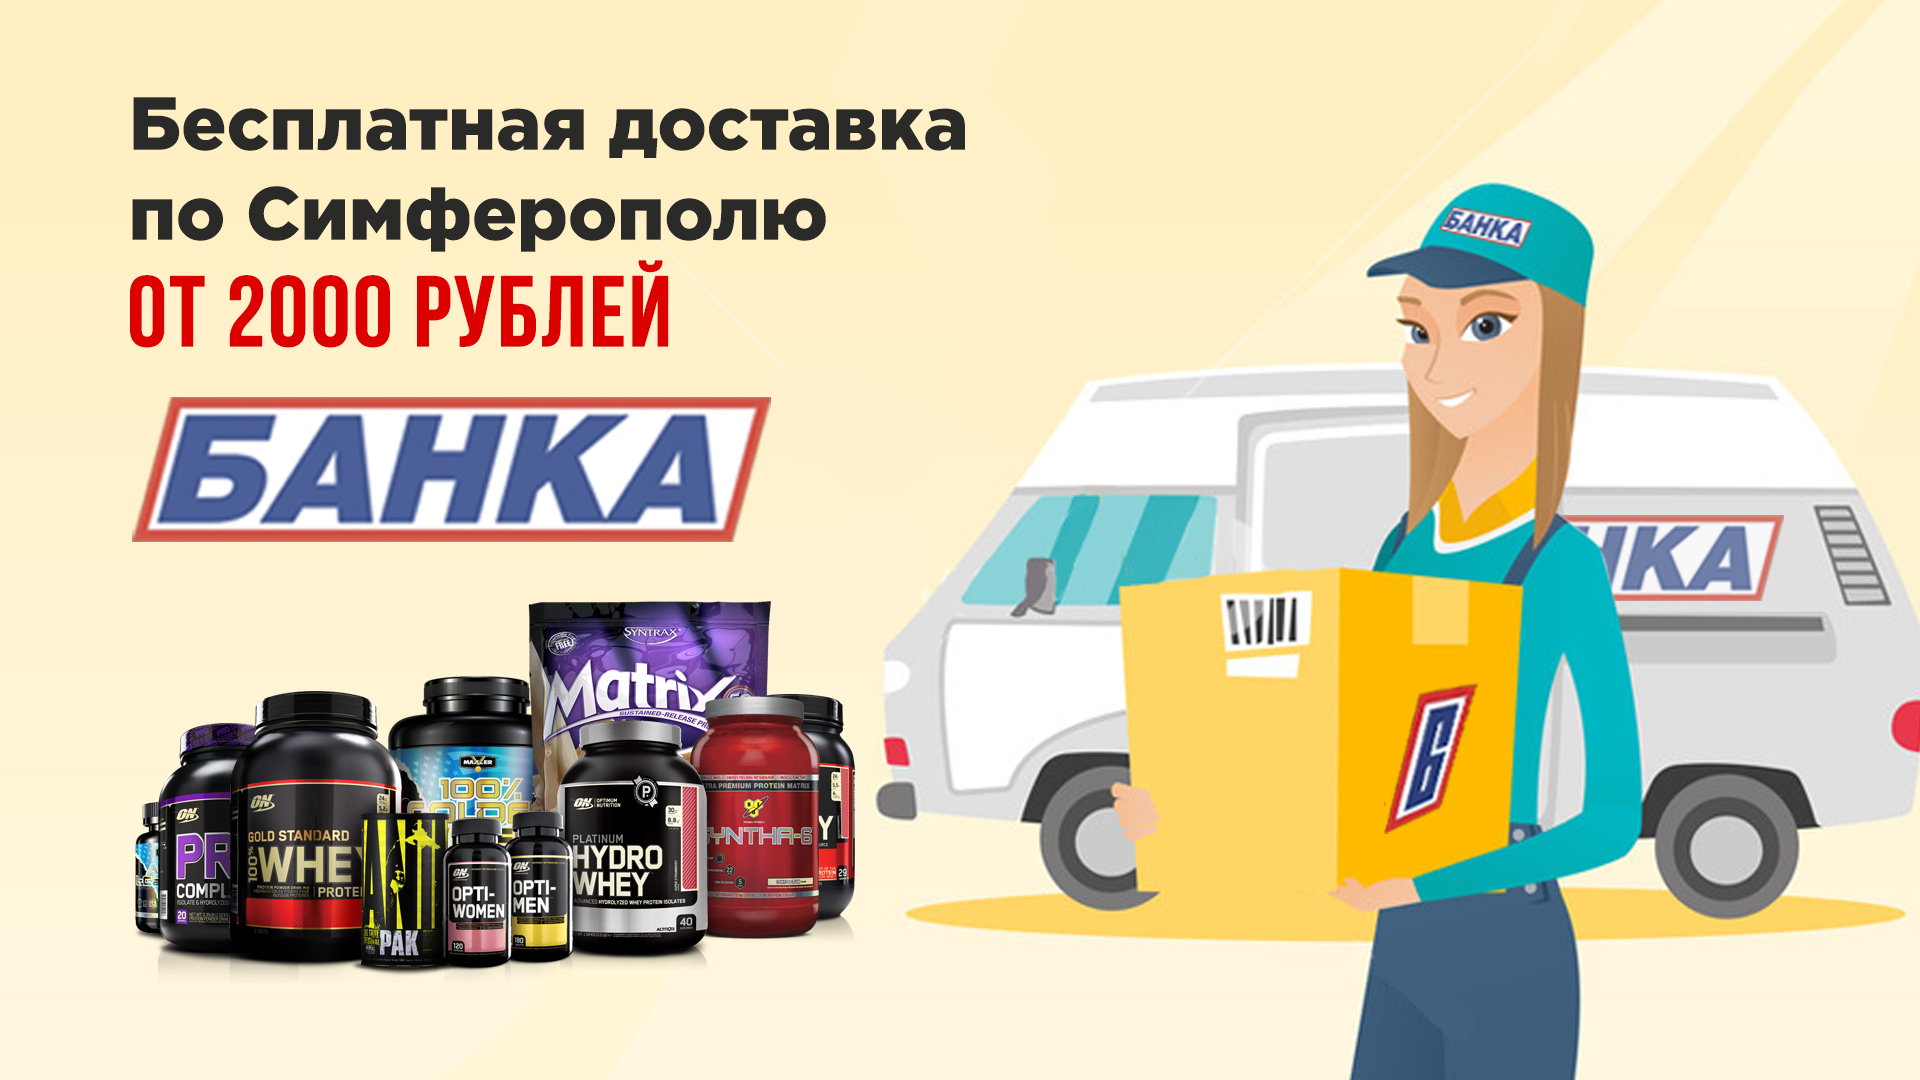 Протеин от Optimum Nutrition 100 % Whey protein Gold standard (пирог) (71 порц/ 2,27 кг)